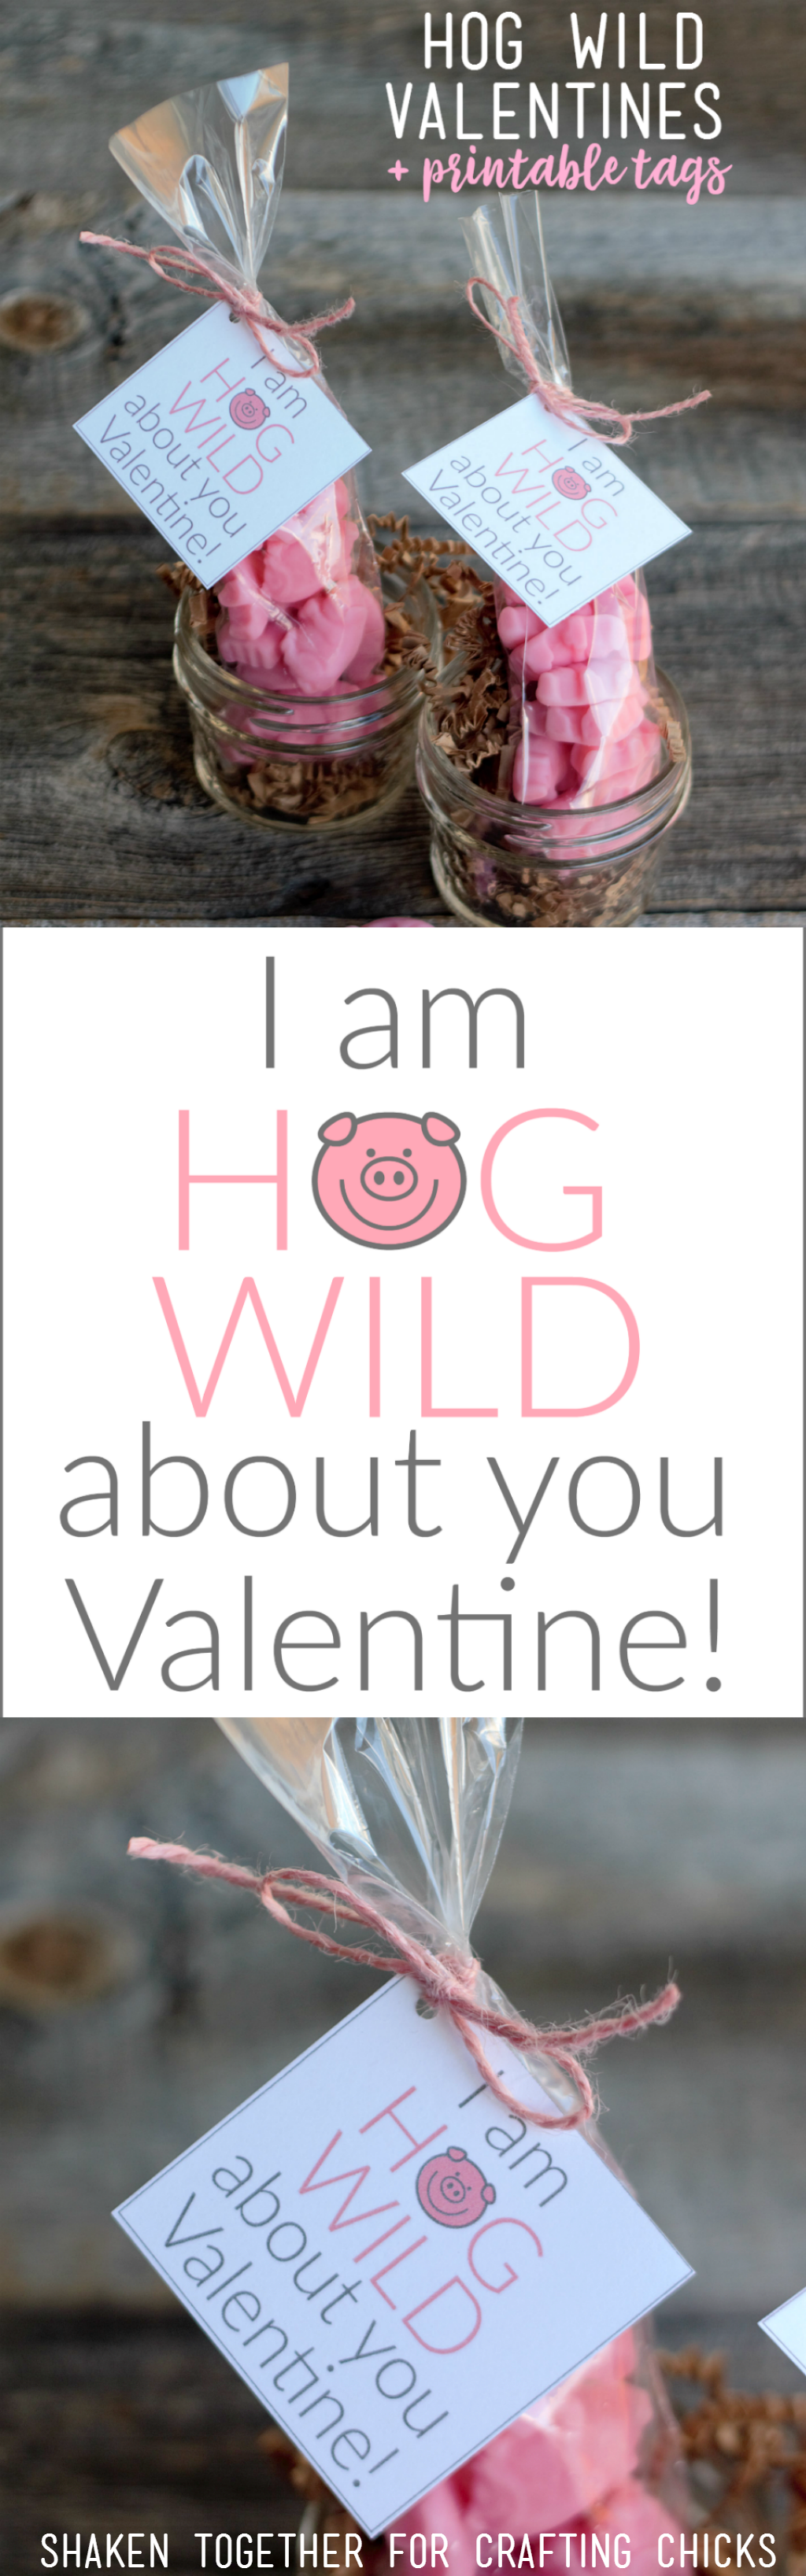 I Am Hog Wild About You Valentines - gummy pigs + printable tags = the cutest little Valentine gifts ever!